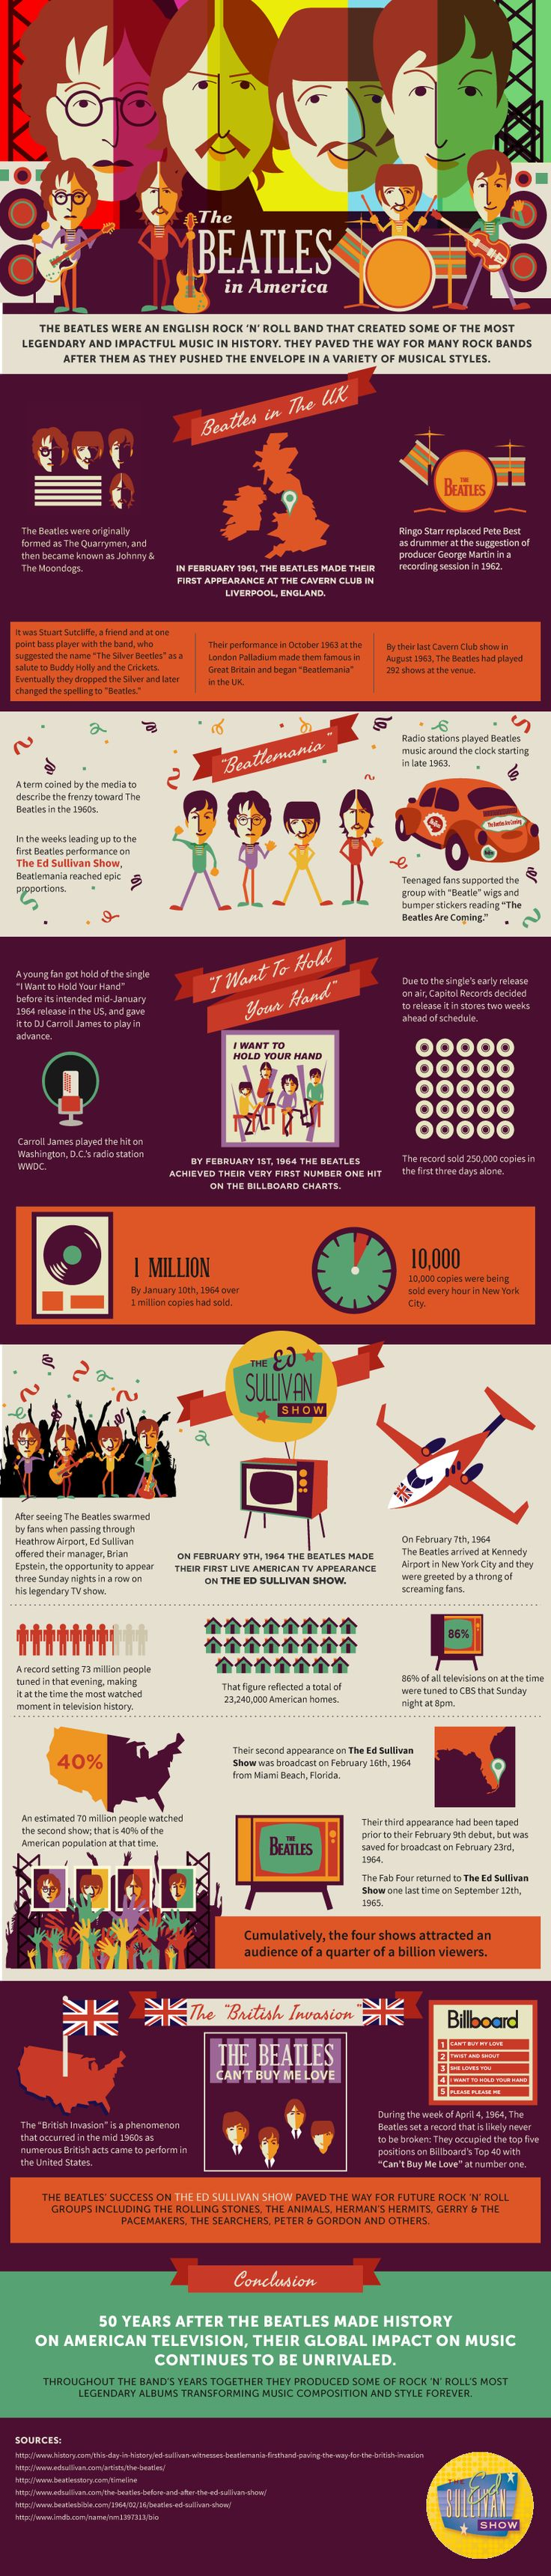 The Beatles 50th anniversary of their legendary U.S. television debut on The Ed Sullivan Show is coming up on Feb. 9th. To commemorate their anniversary, we have created this infographic of The Beatles in America.